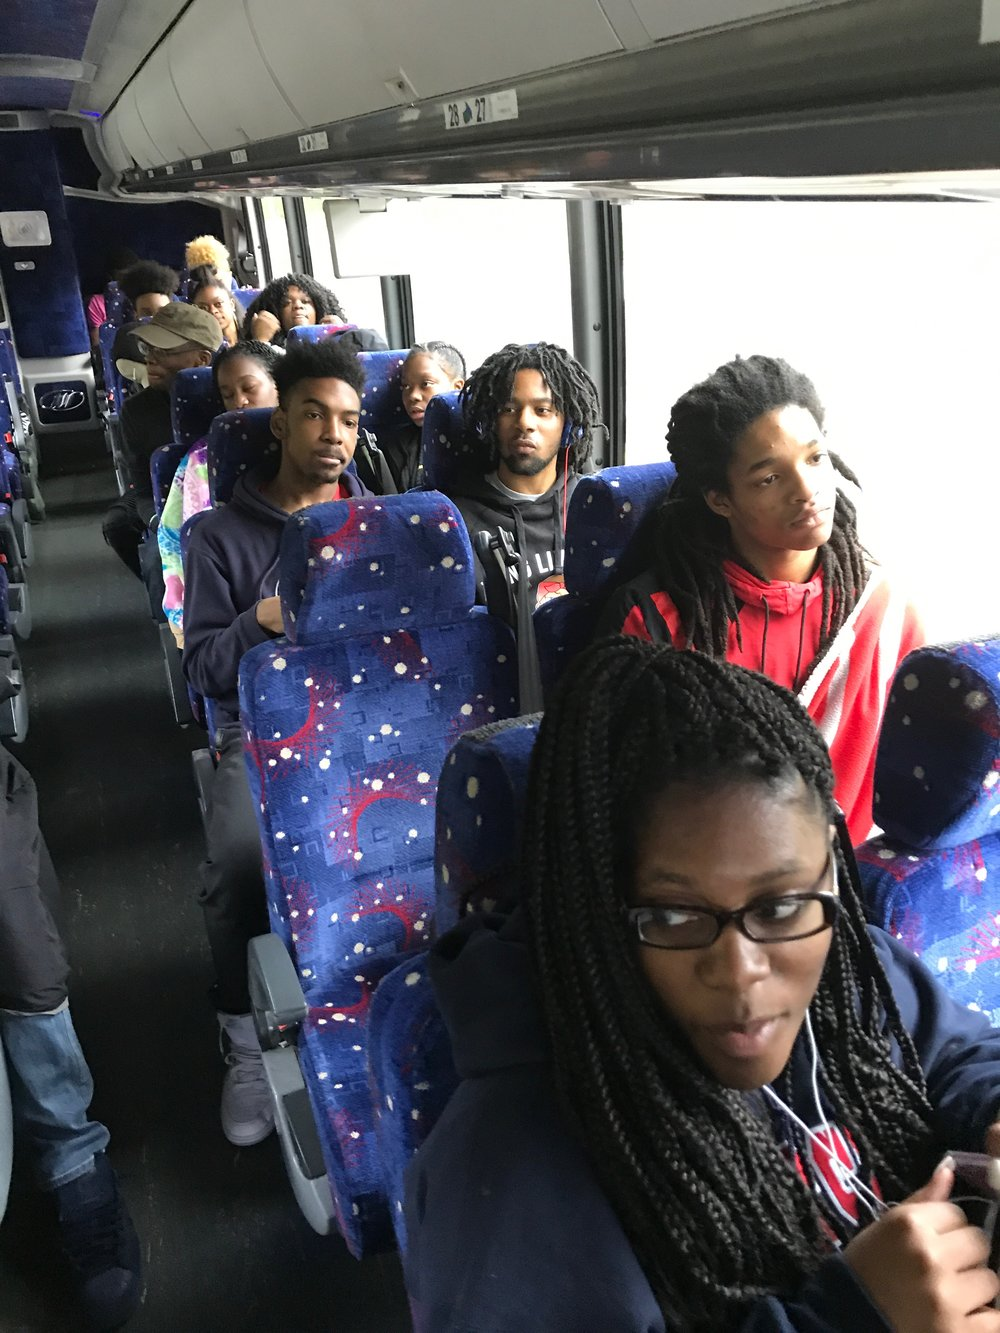 UPCS travels to Harrisburg to visit a college campus